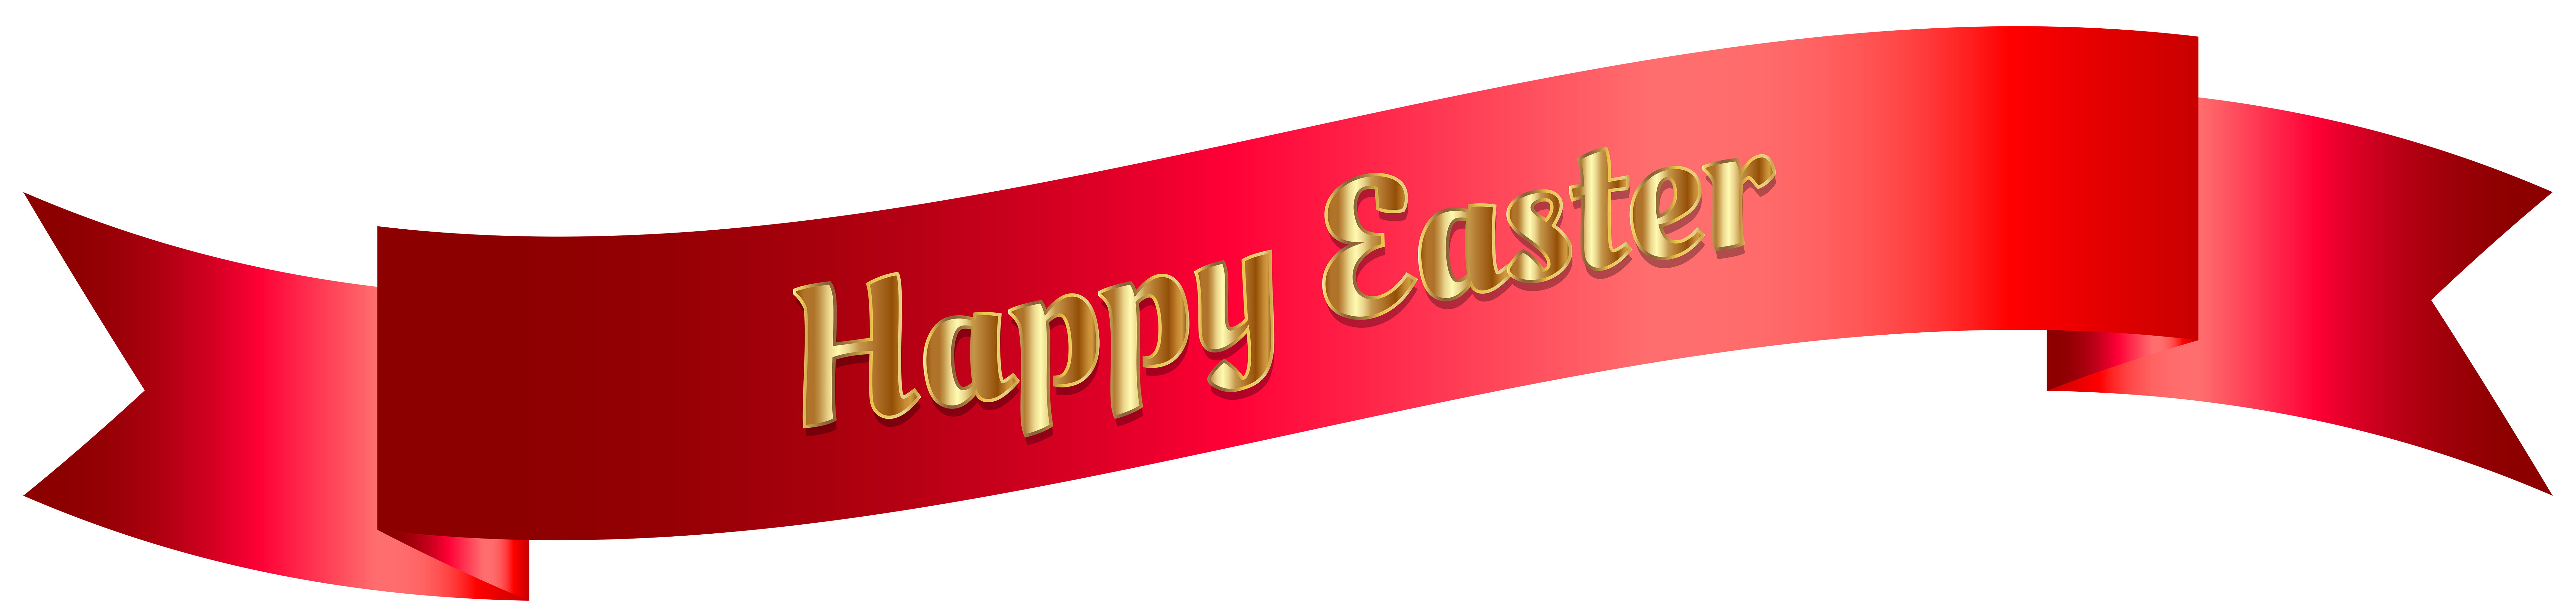 happy easter clipart banner